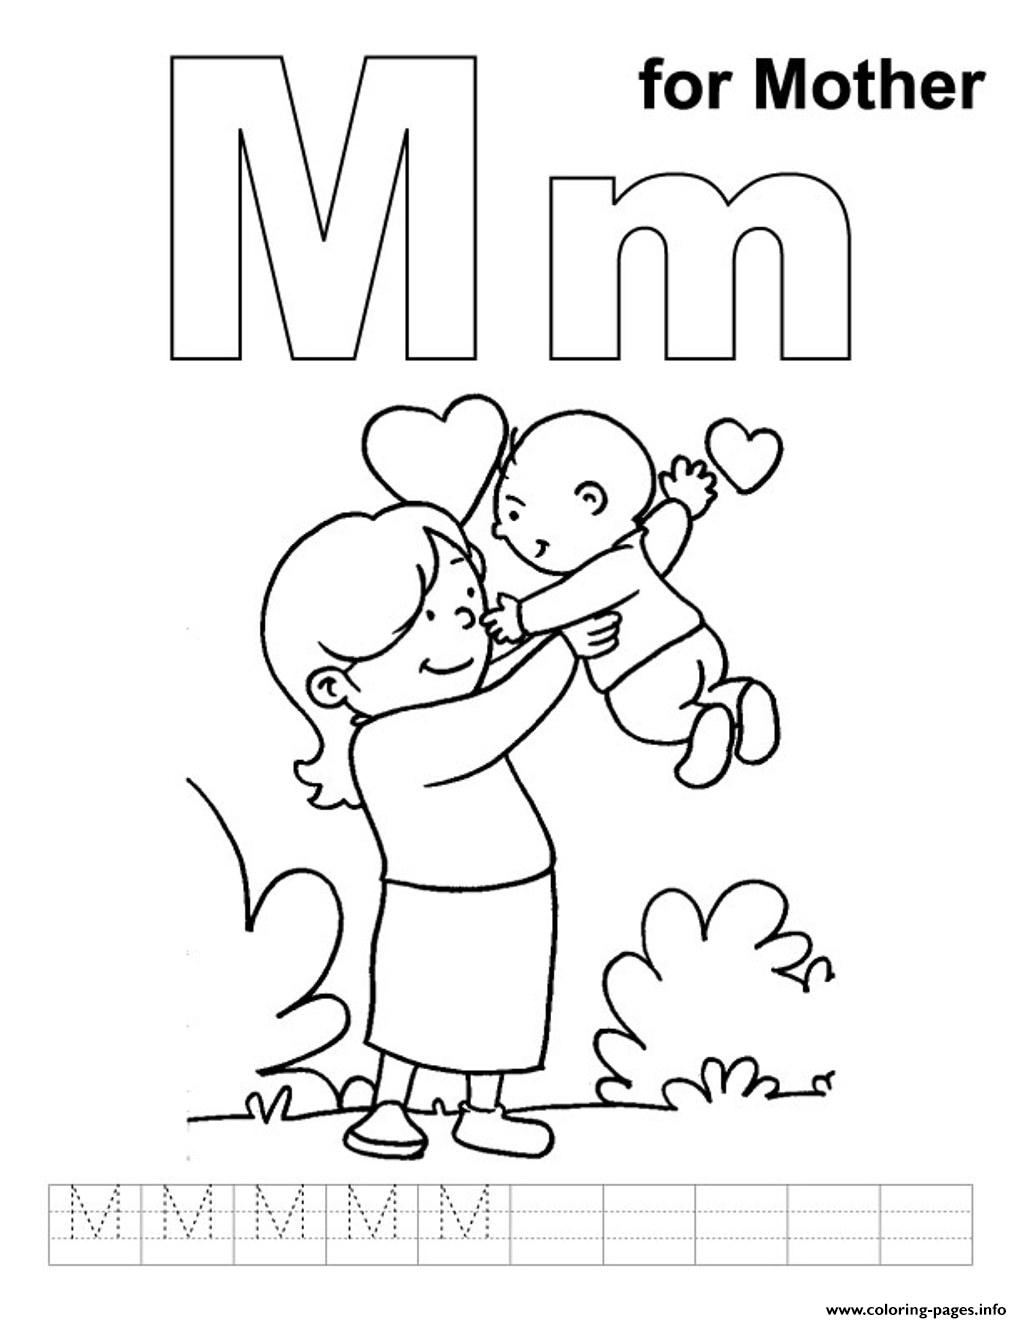 Lovely mother free alphabet sc83b coloring pages printable for Coloring pages of mom